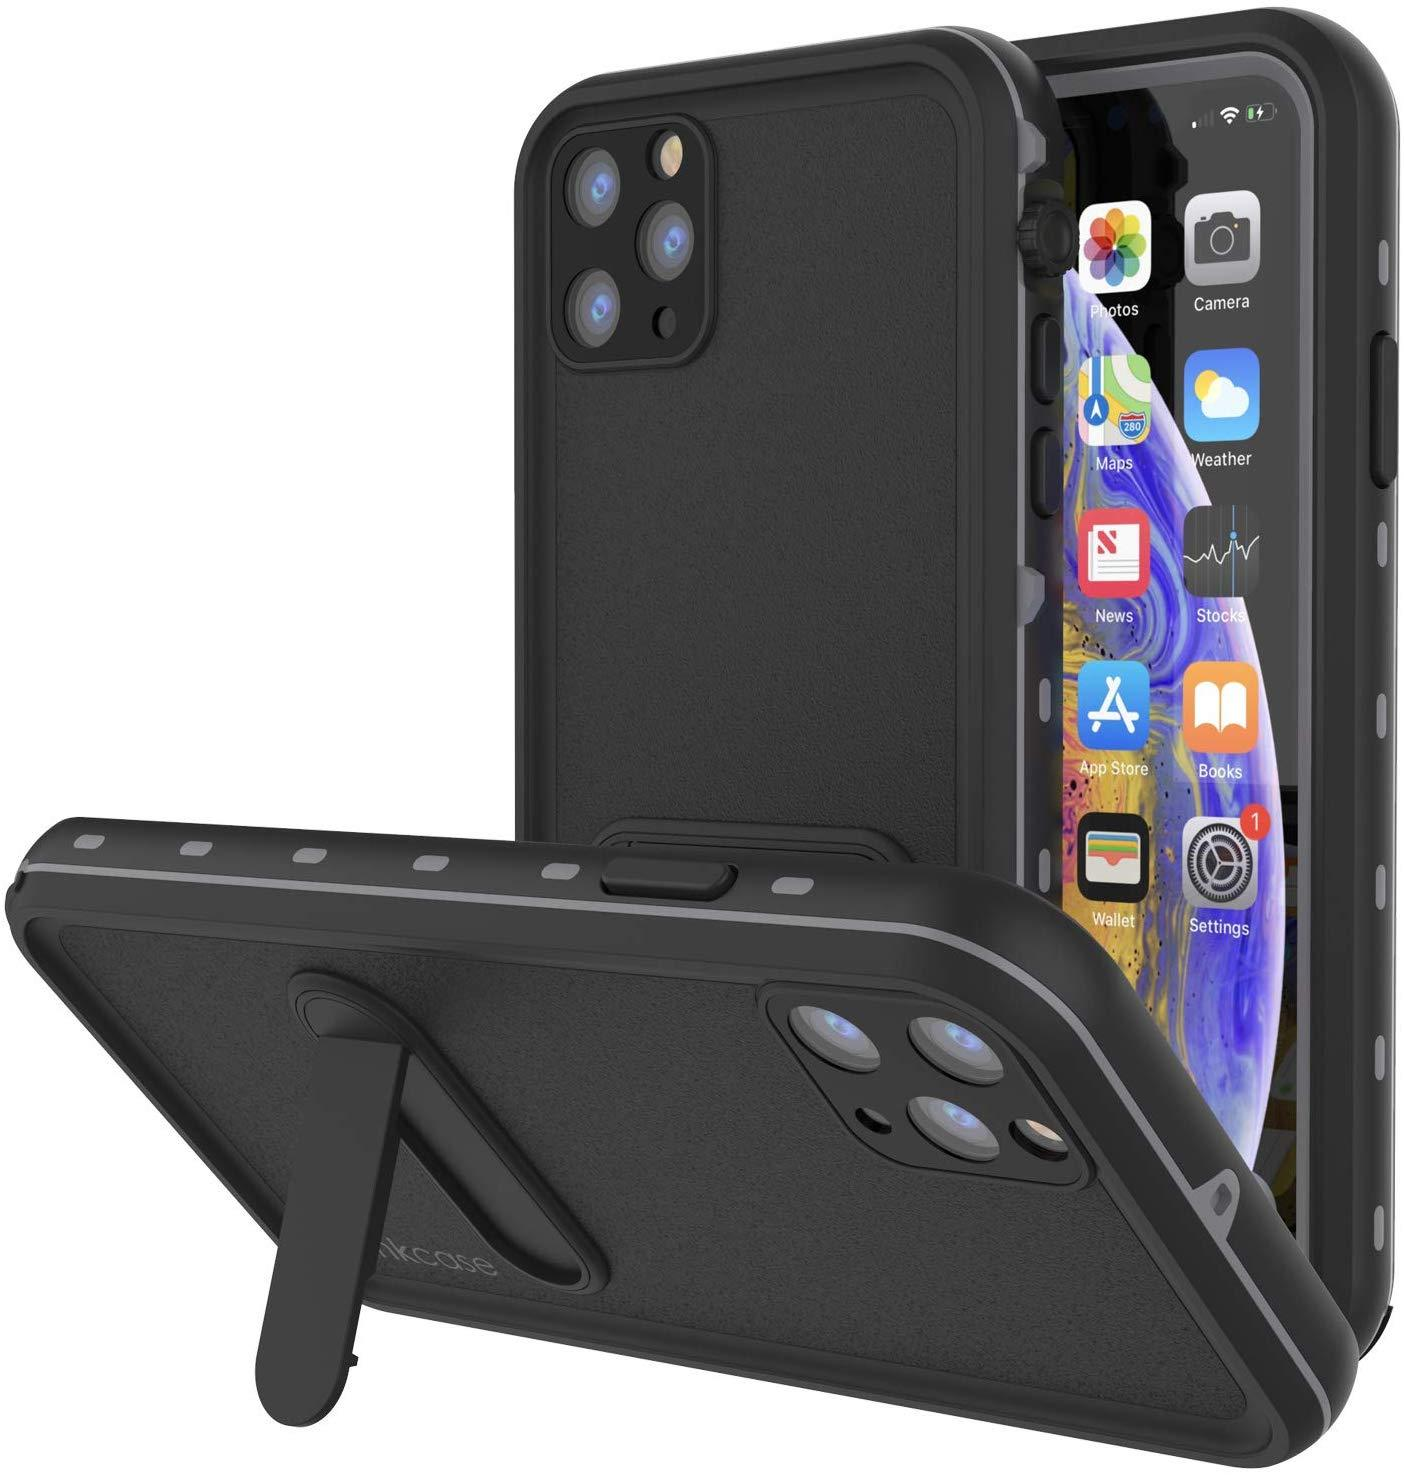 iPhone 11 Pro Max Waterproof Case, Punkcase [KickStud Series] Armor Cover [Black]